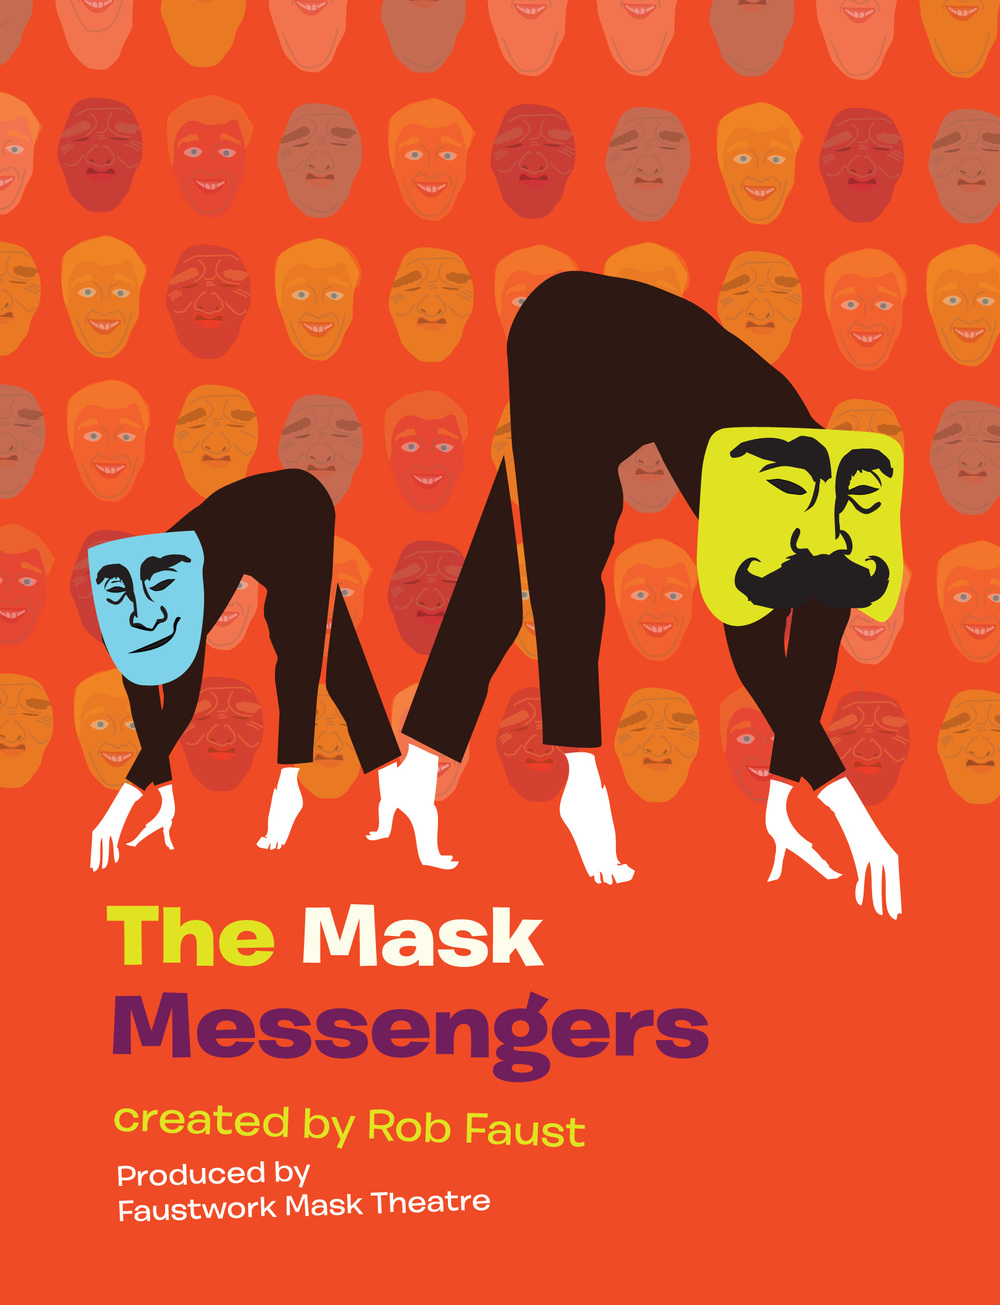 THE MASK MESSENGERS